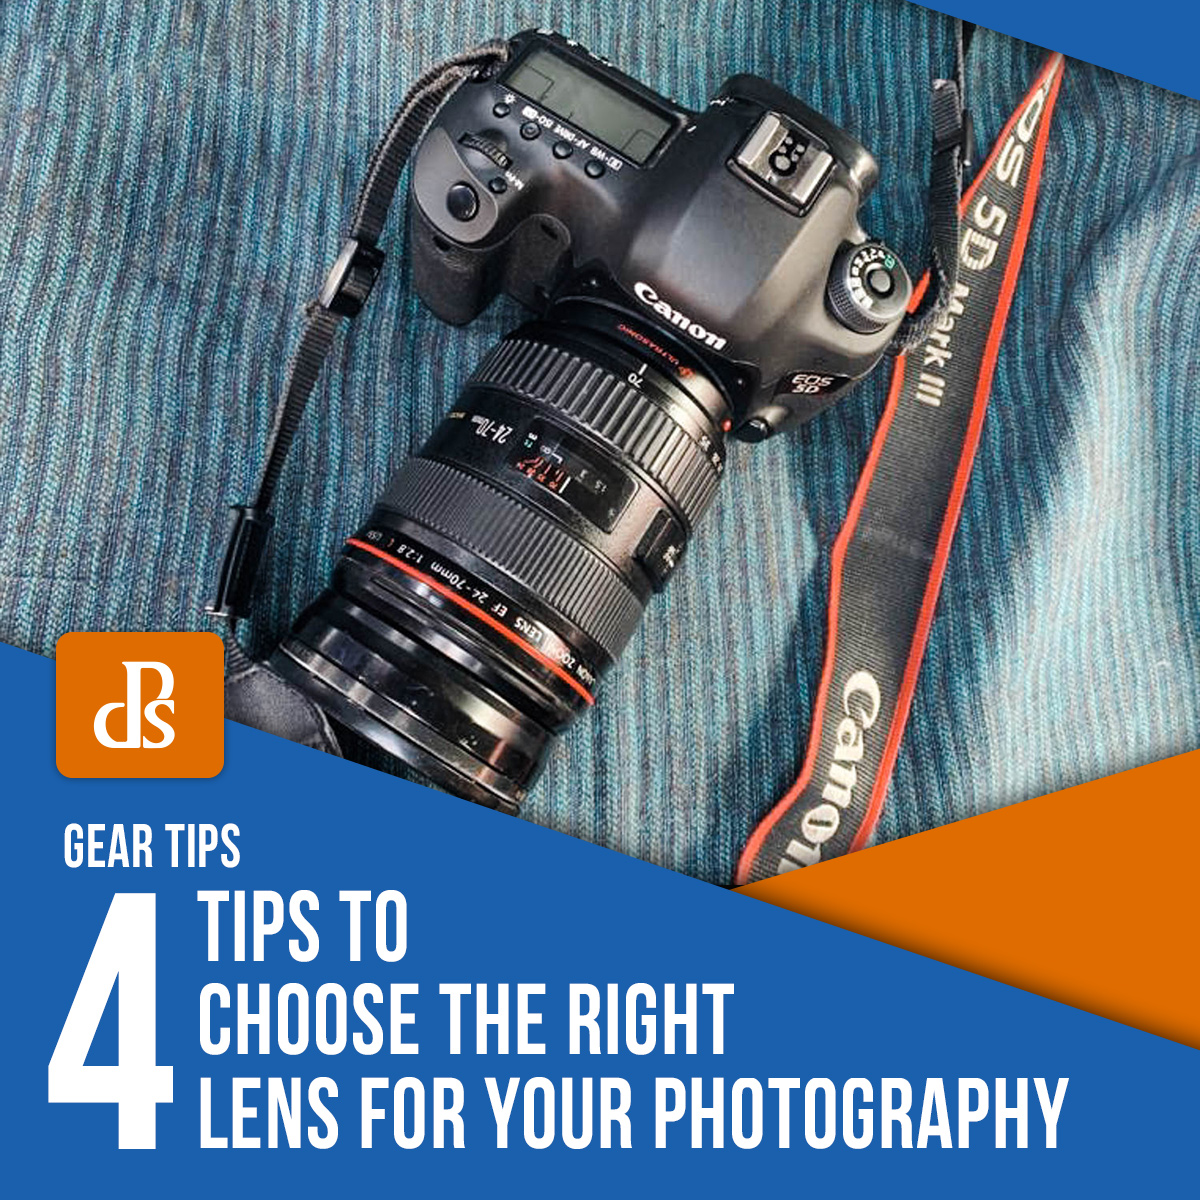 tips-to-choose-the-right-lens-in-photography